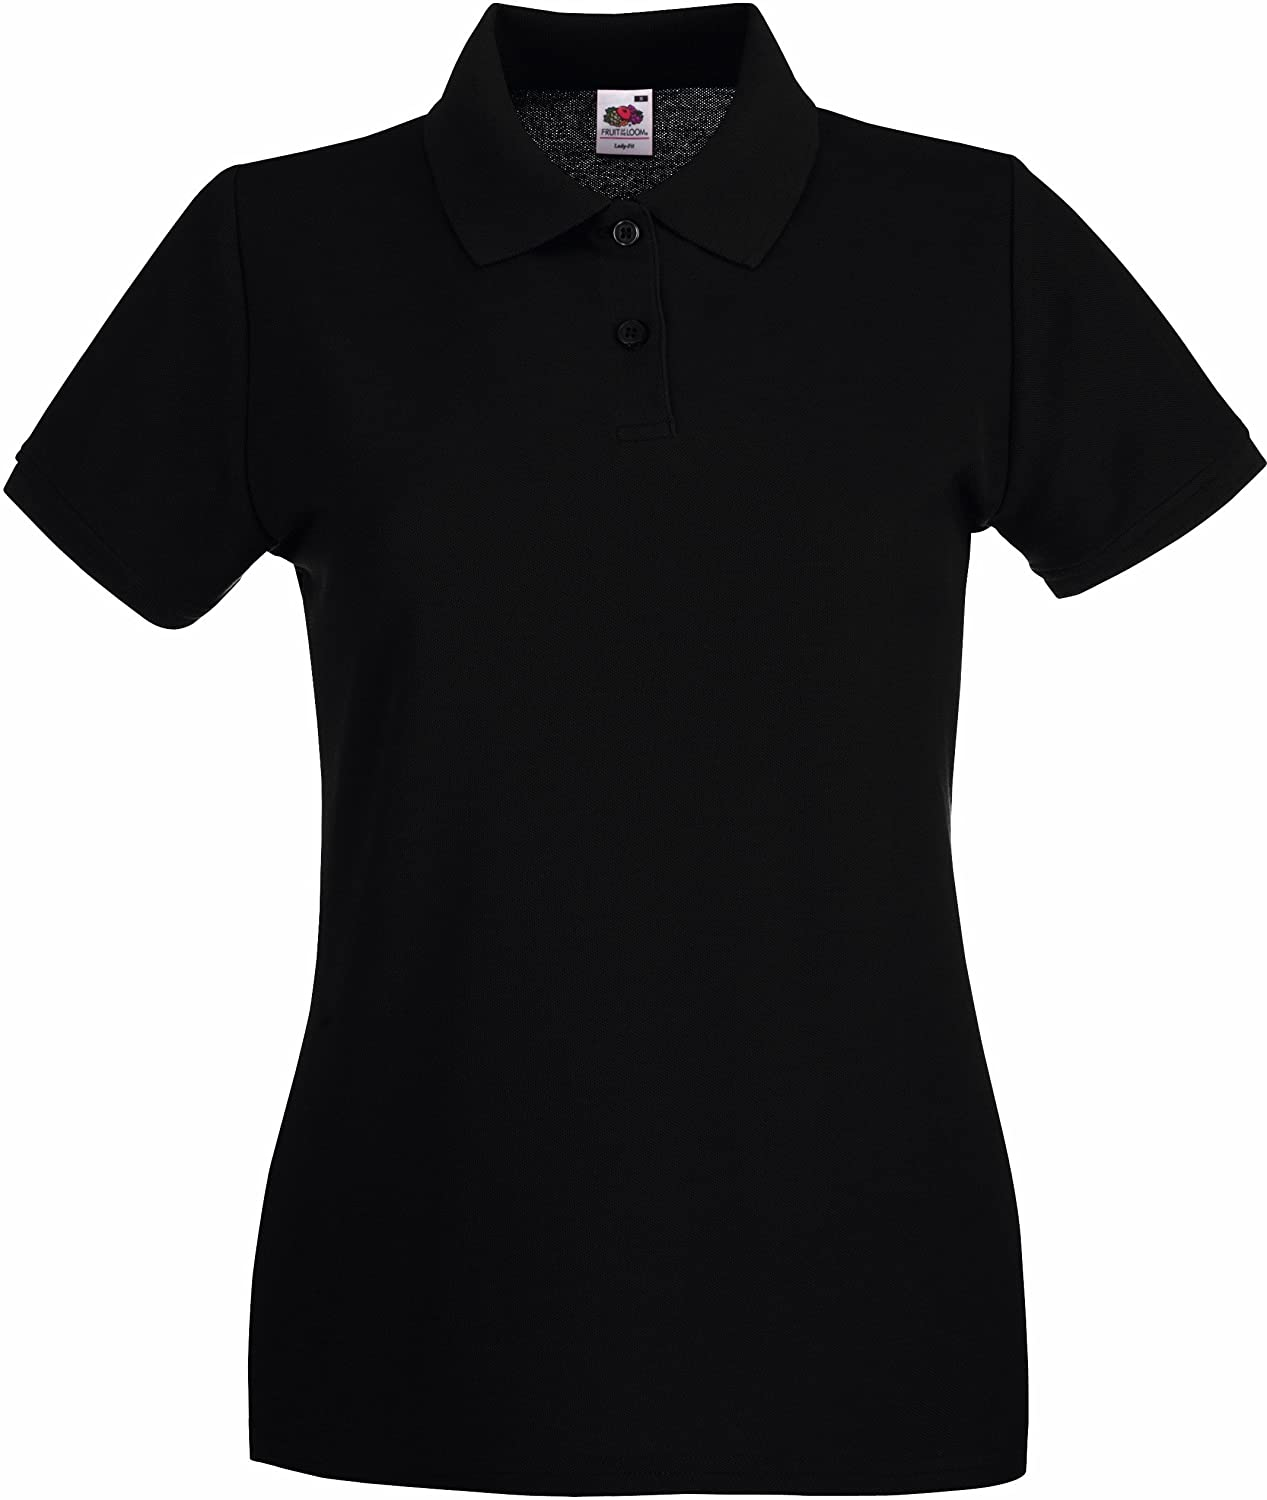 Lady-Fit Premium Poloshirt S / 10, Black